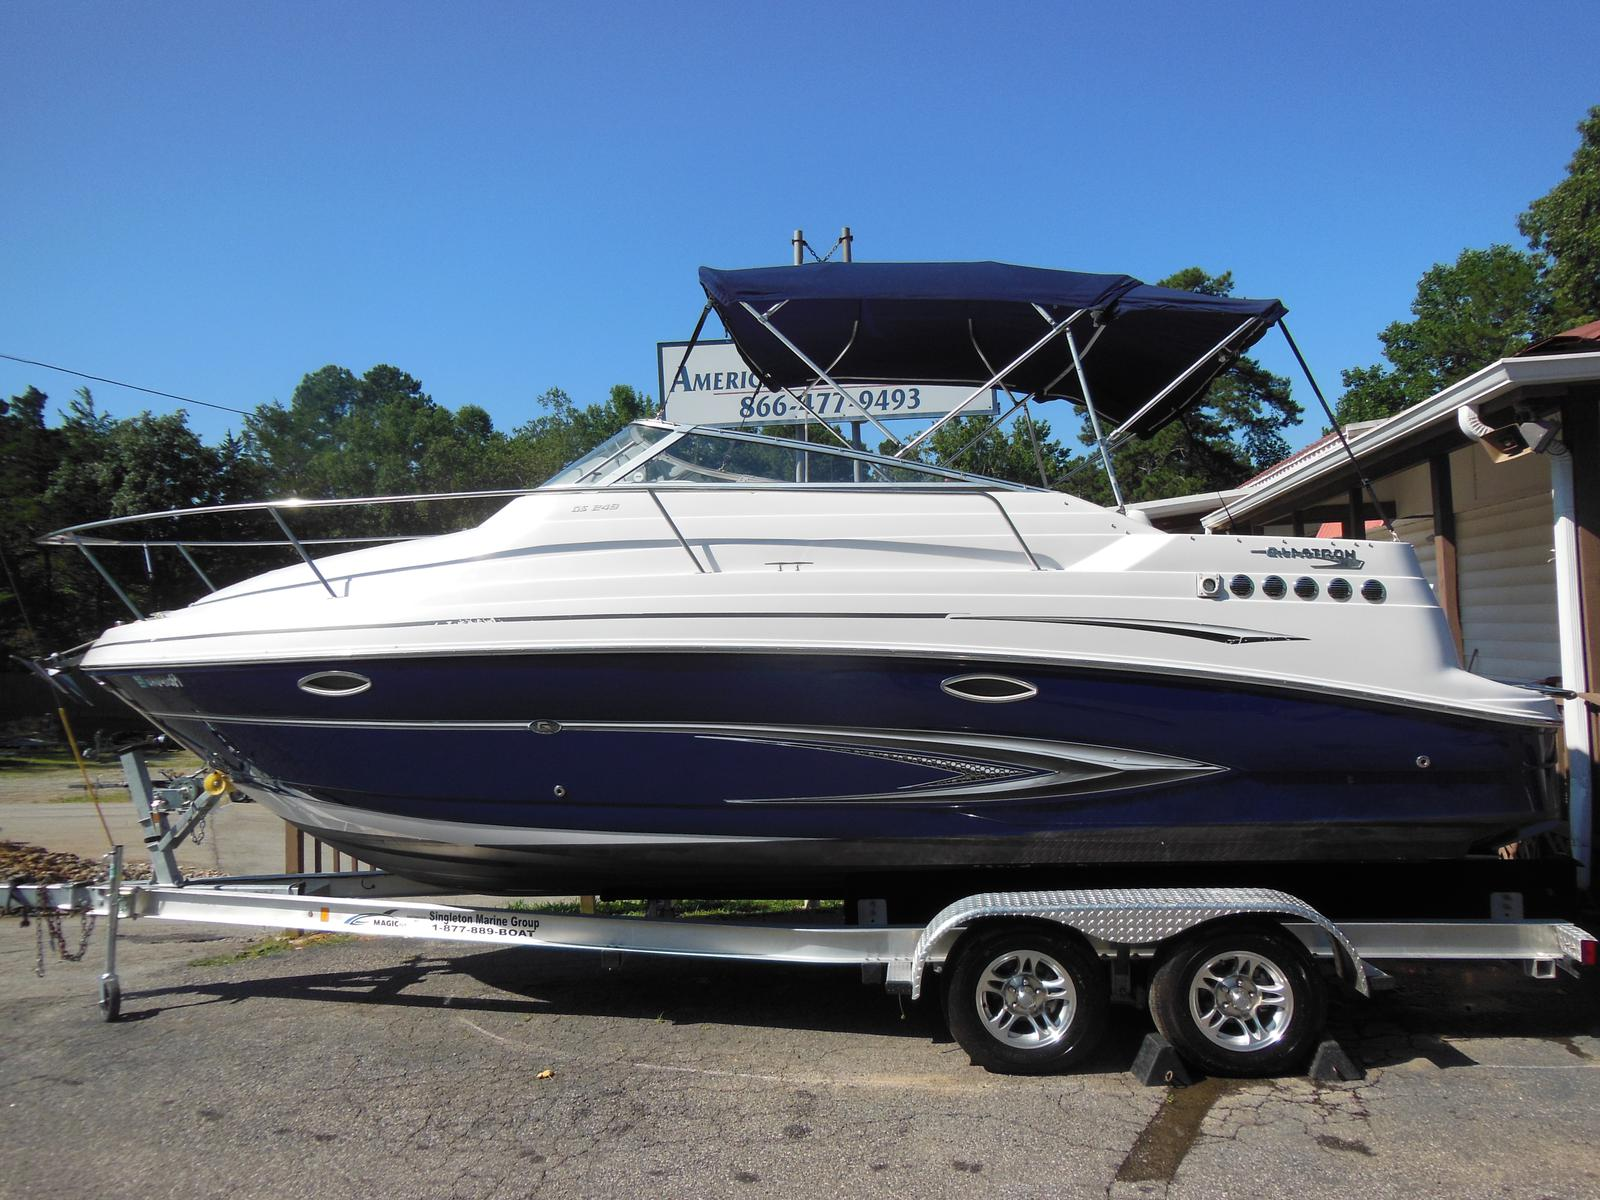 Glastron boats for sale in Georgia - Boat Trader